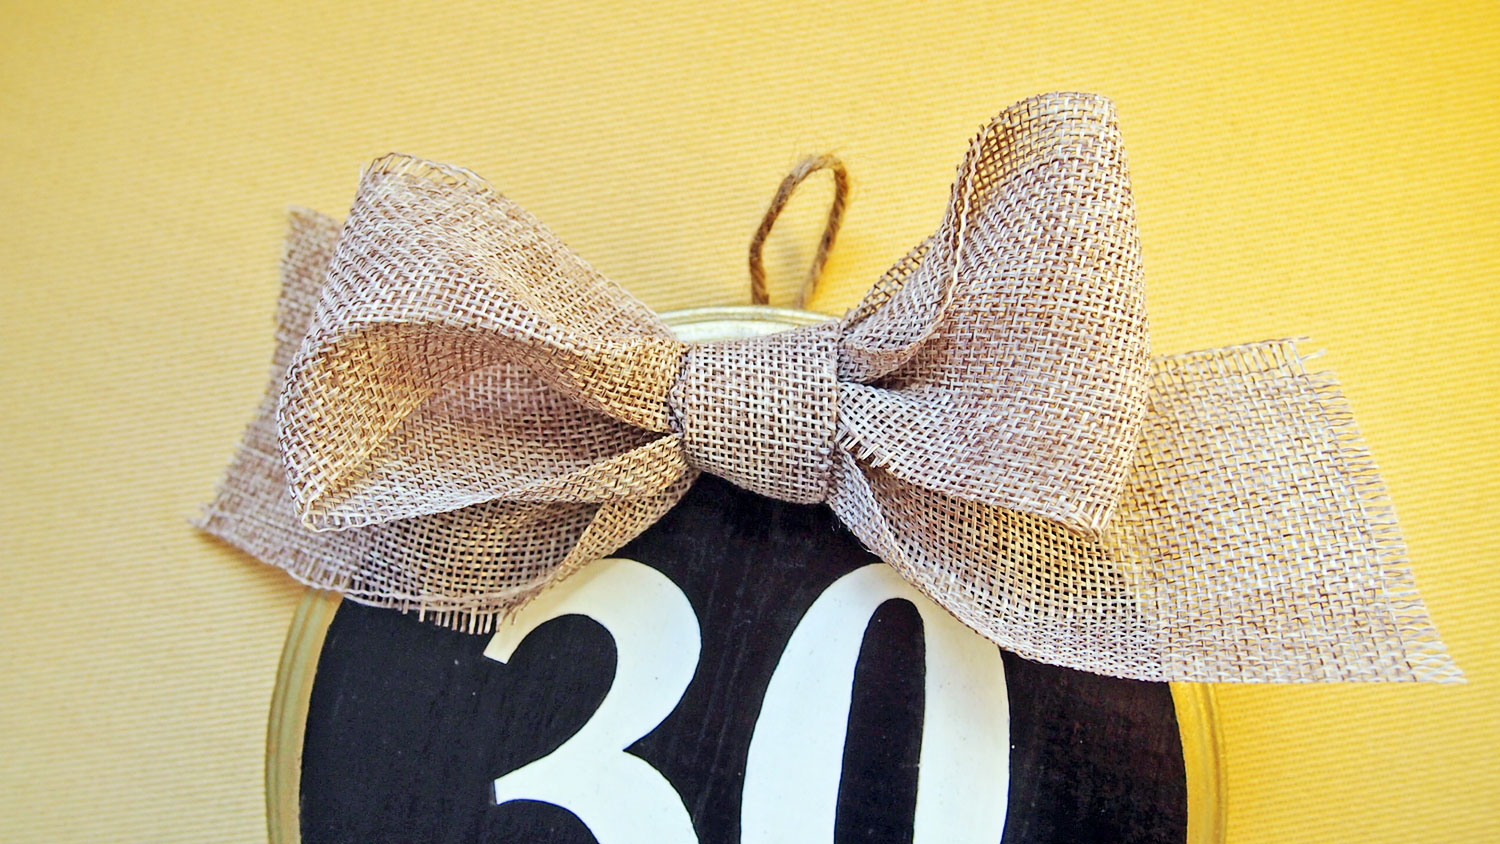 How to make a cute house number for your sweet home (DIY Tutorial) via angelichigo.blogspot.ca